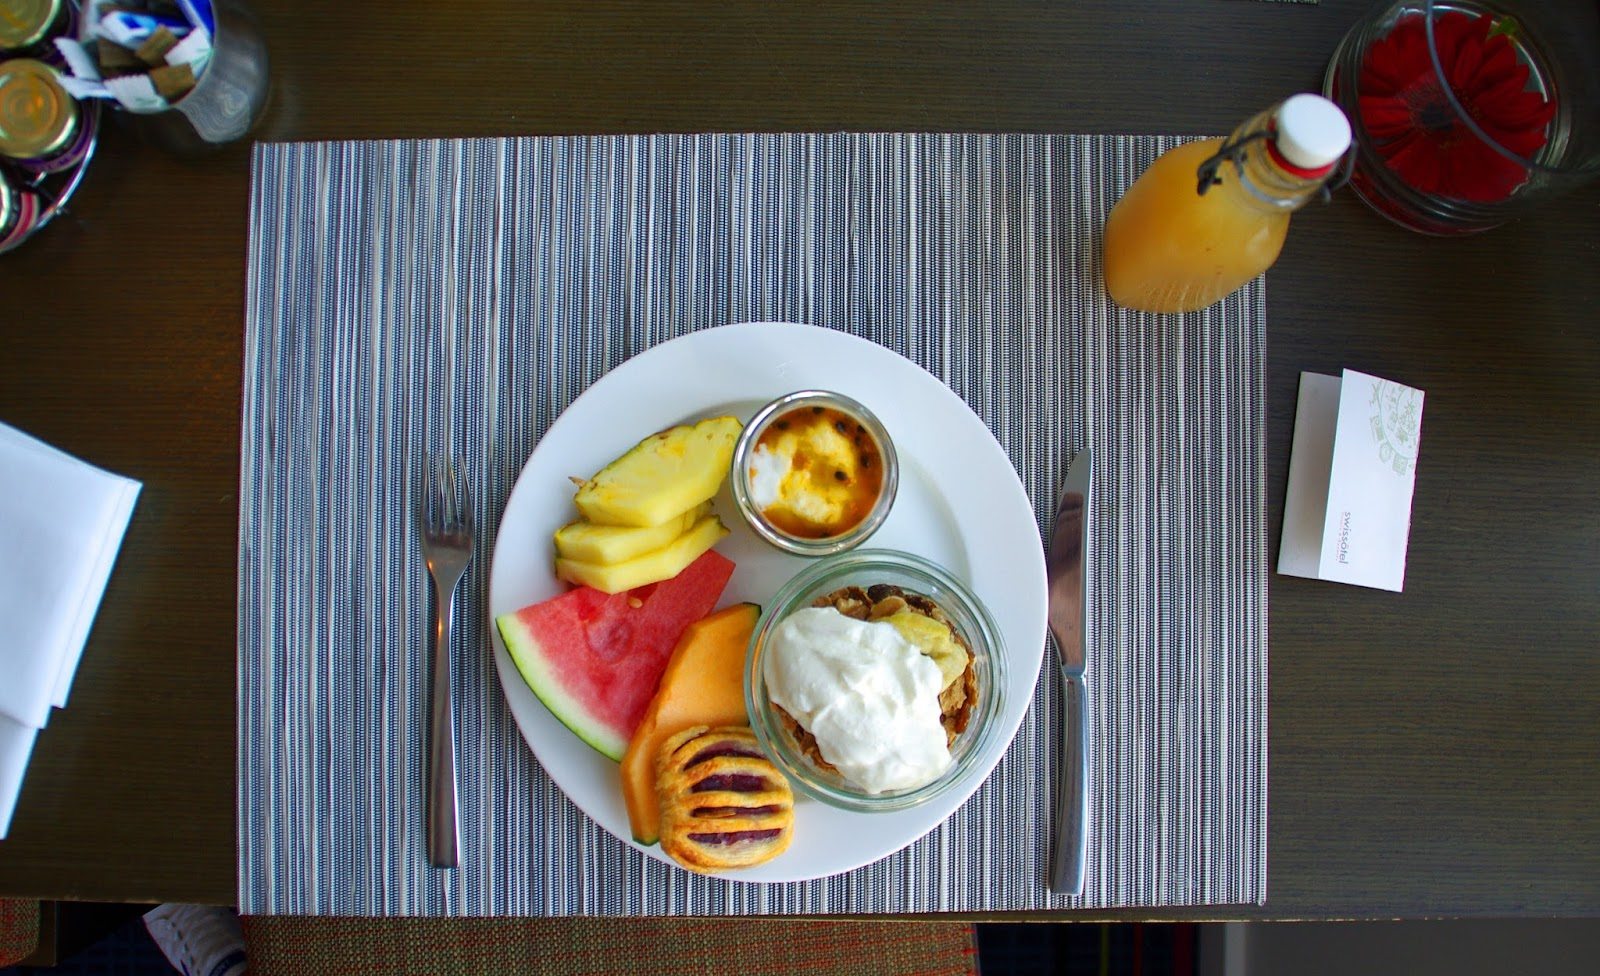 Luxury Hotel Breakfasts at swissotel Sydney